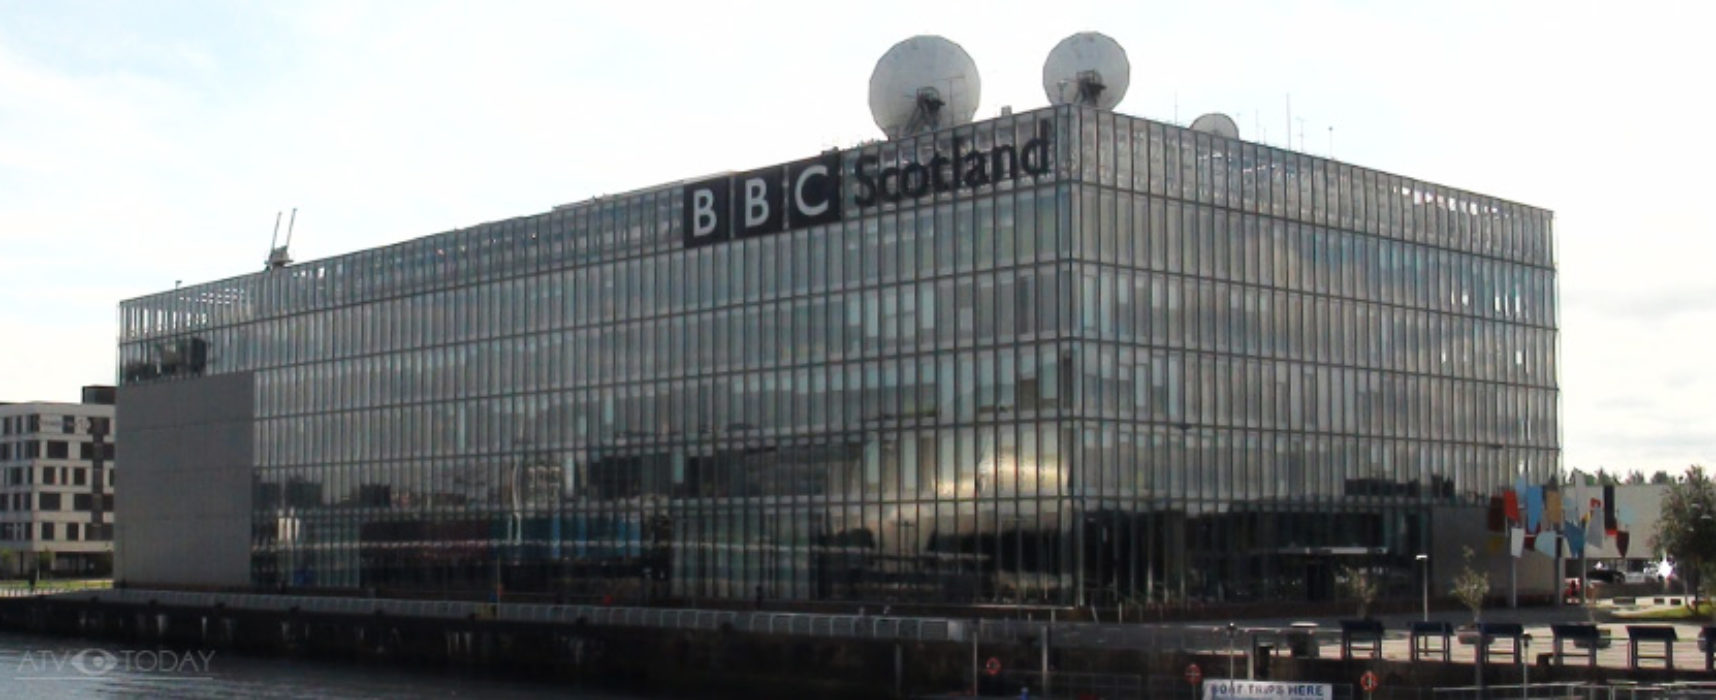 Mark Hedgecoe becomes Head of Factual at BBC Scotland